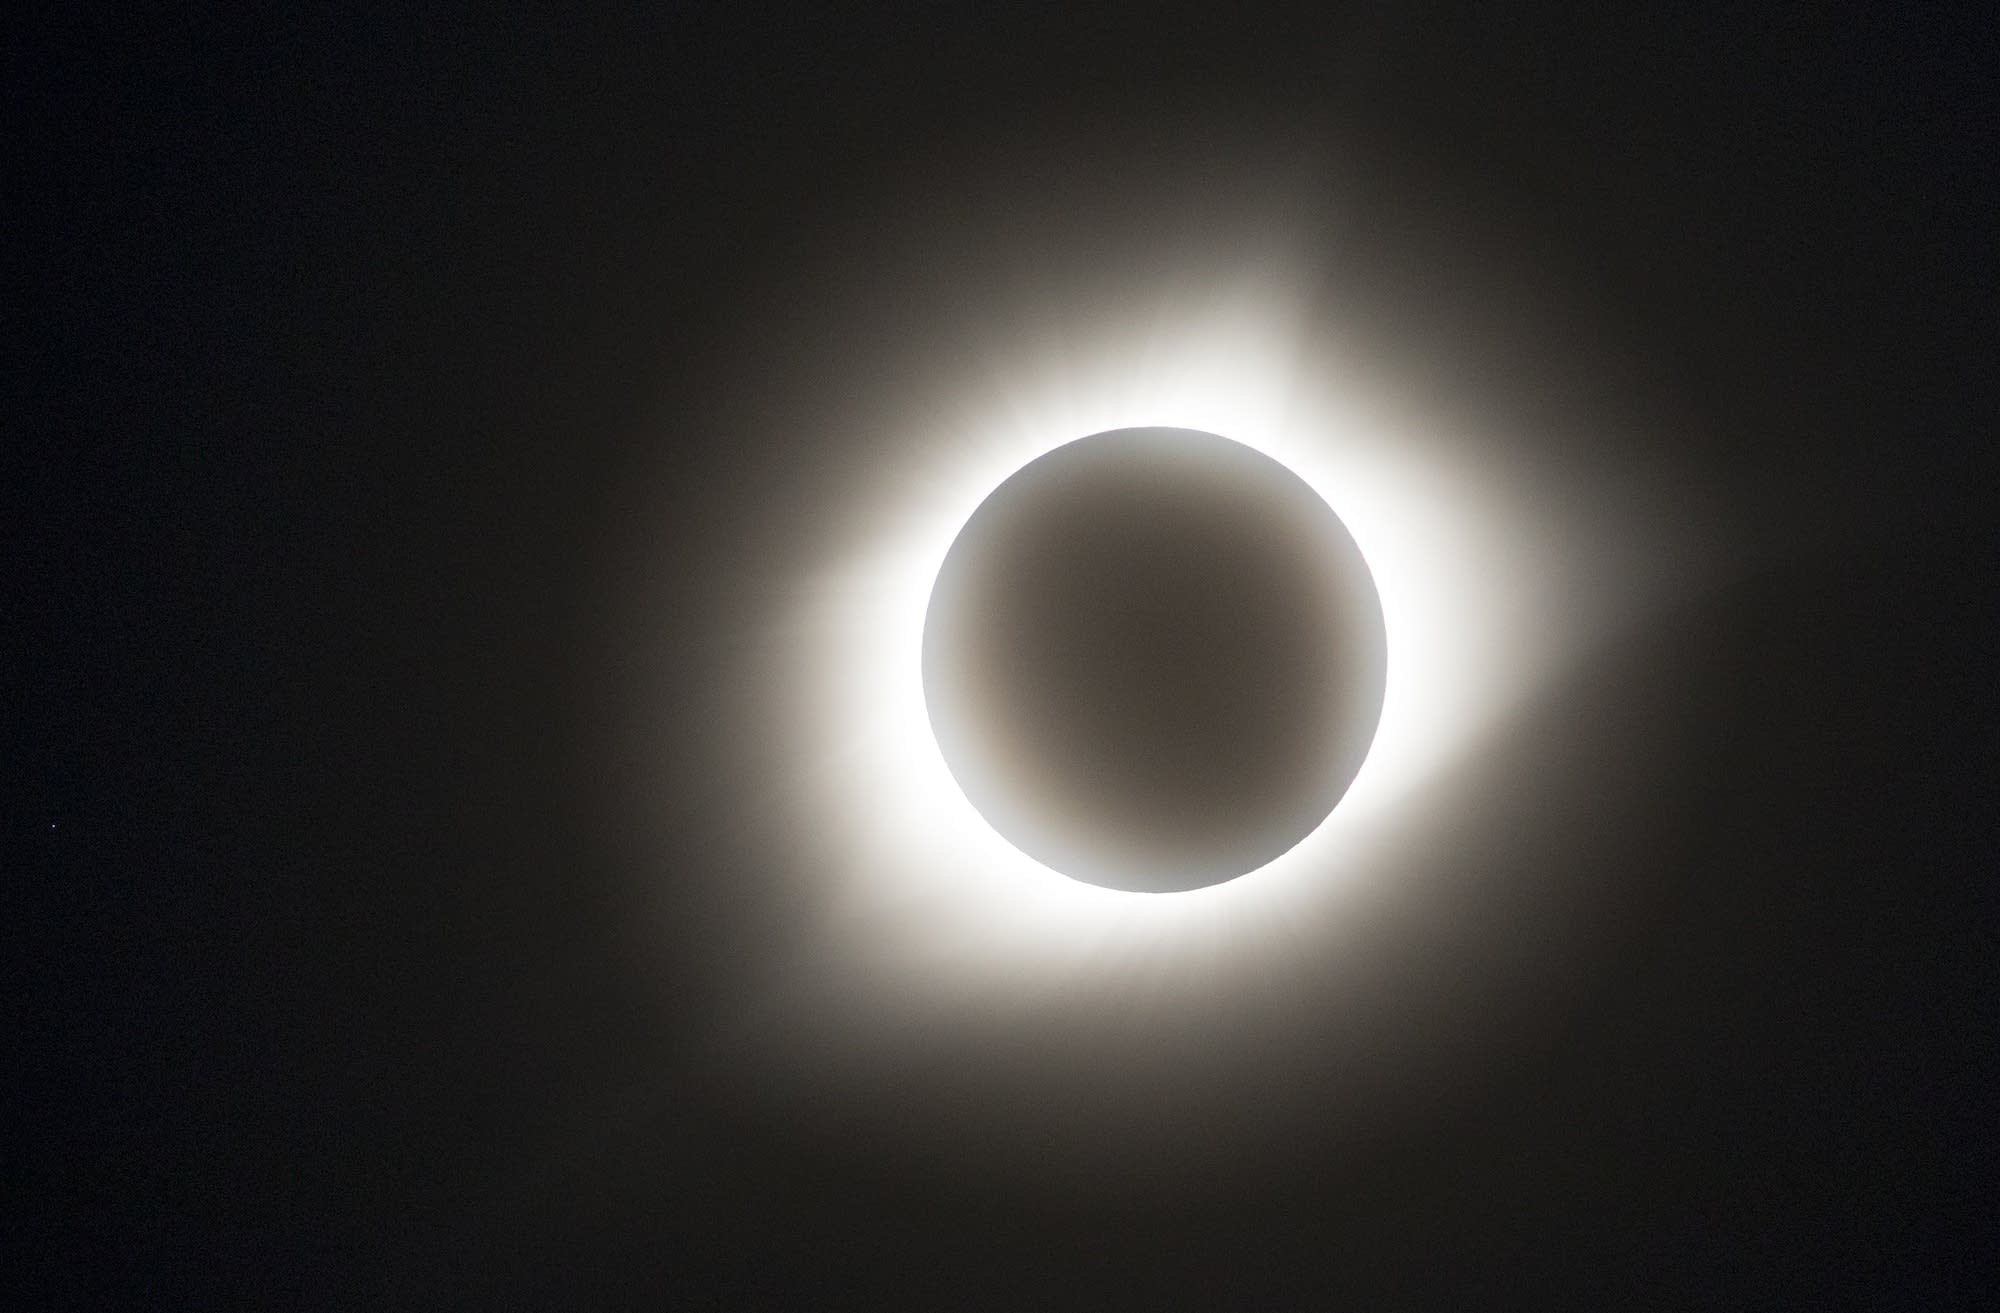 The total solar eclipse seen from Pawnee City, Nebraska.